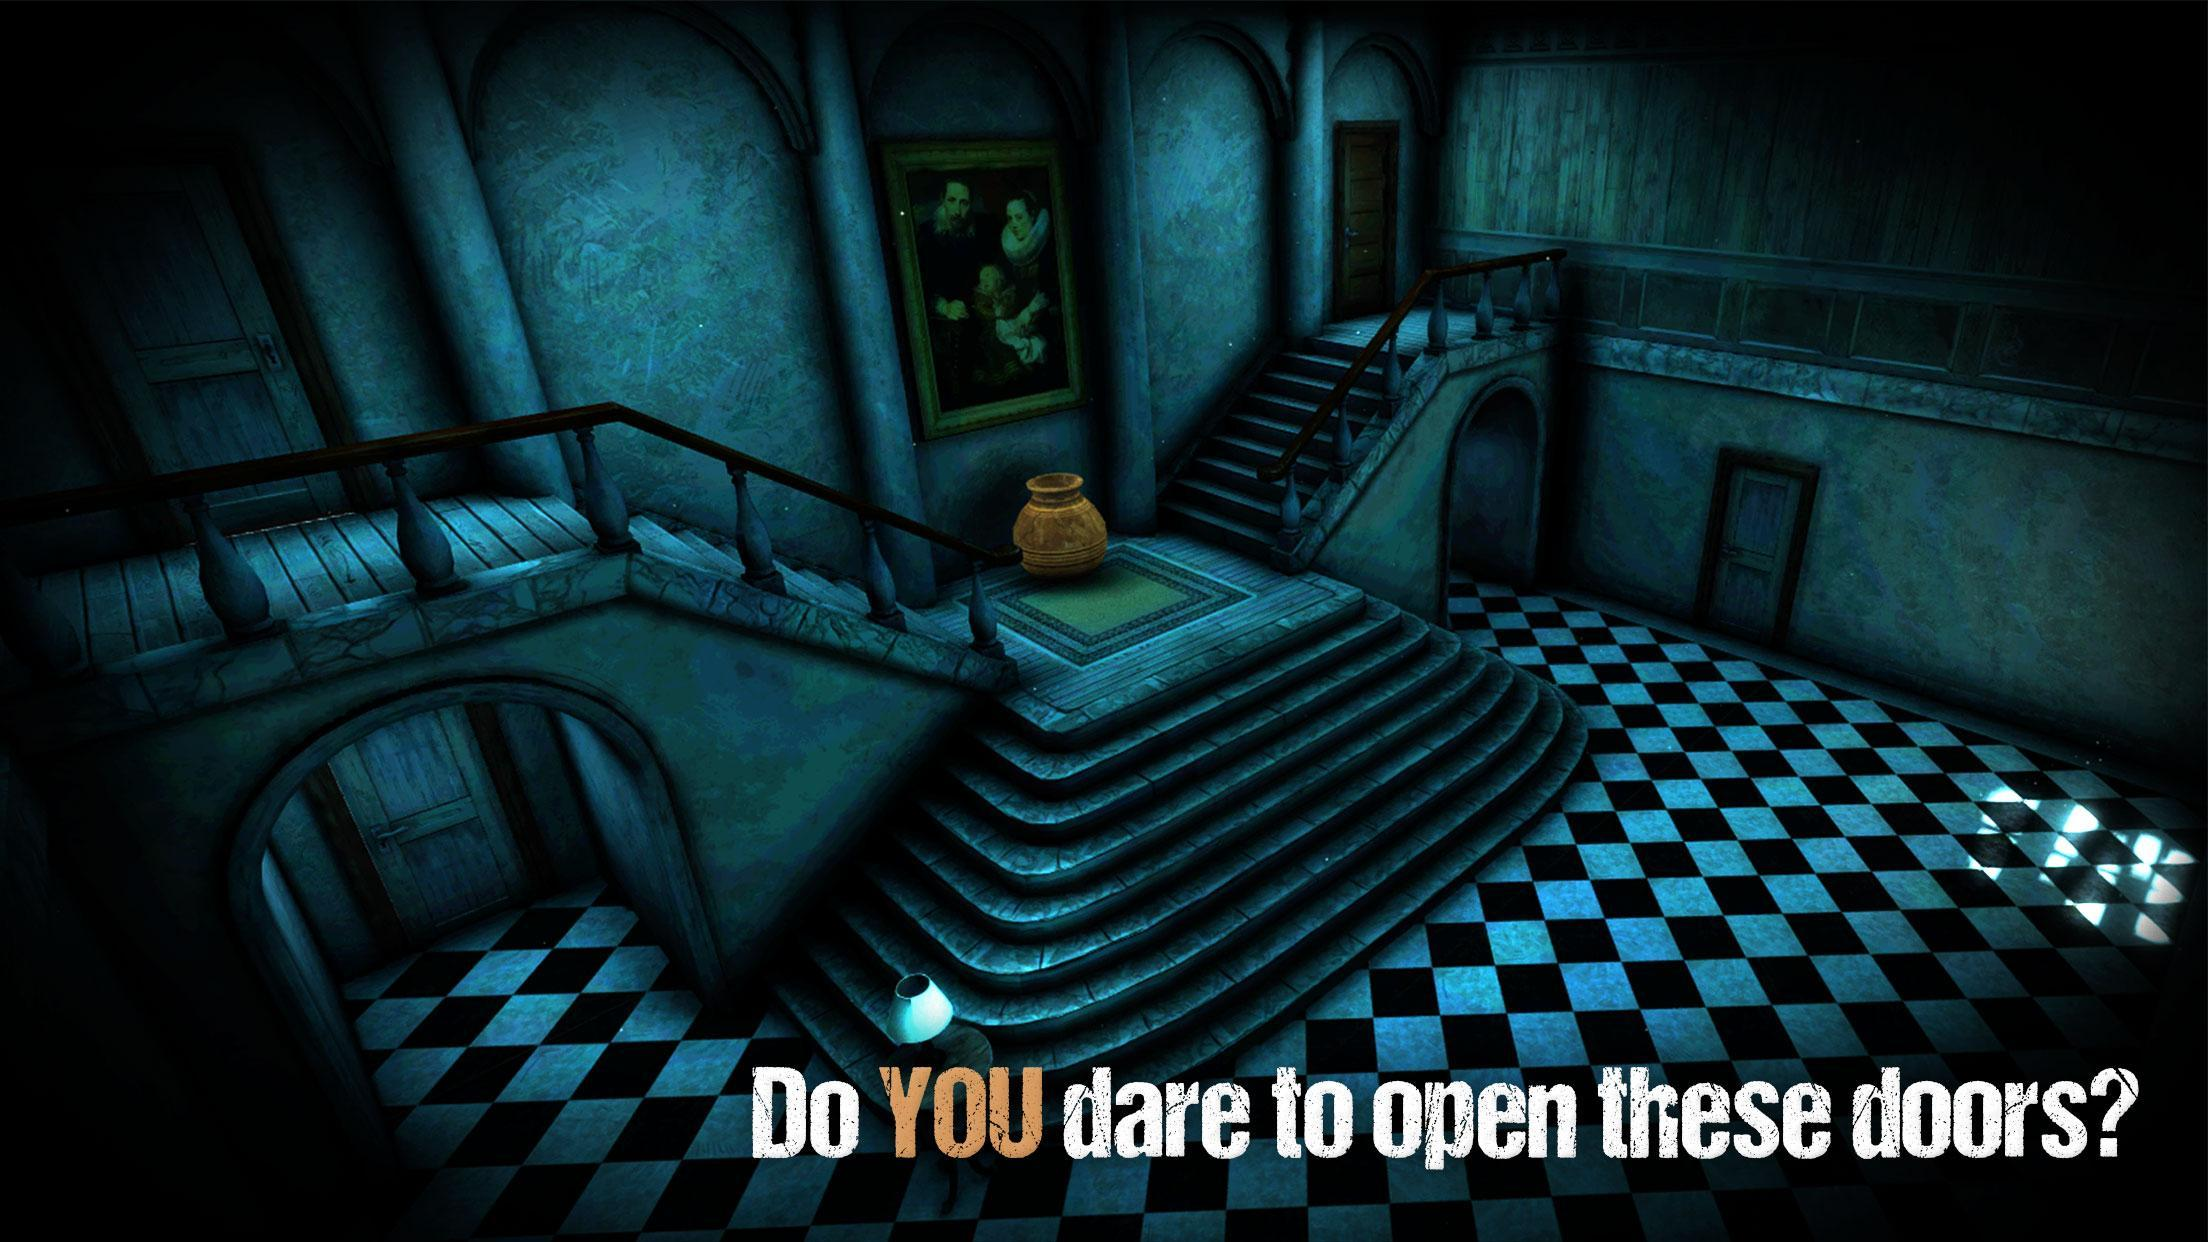 Sinister Edge Scary Horror Games 2.4.1 Screenshot 8